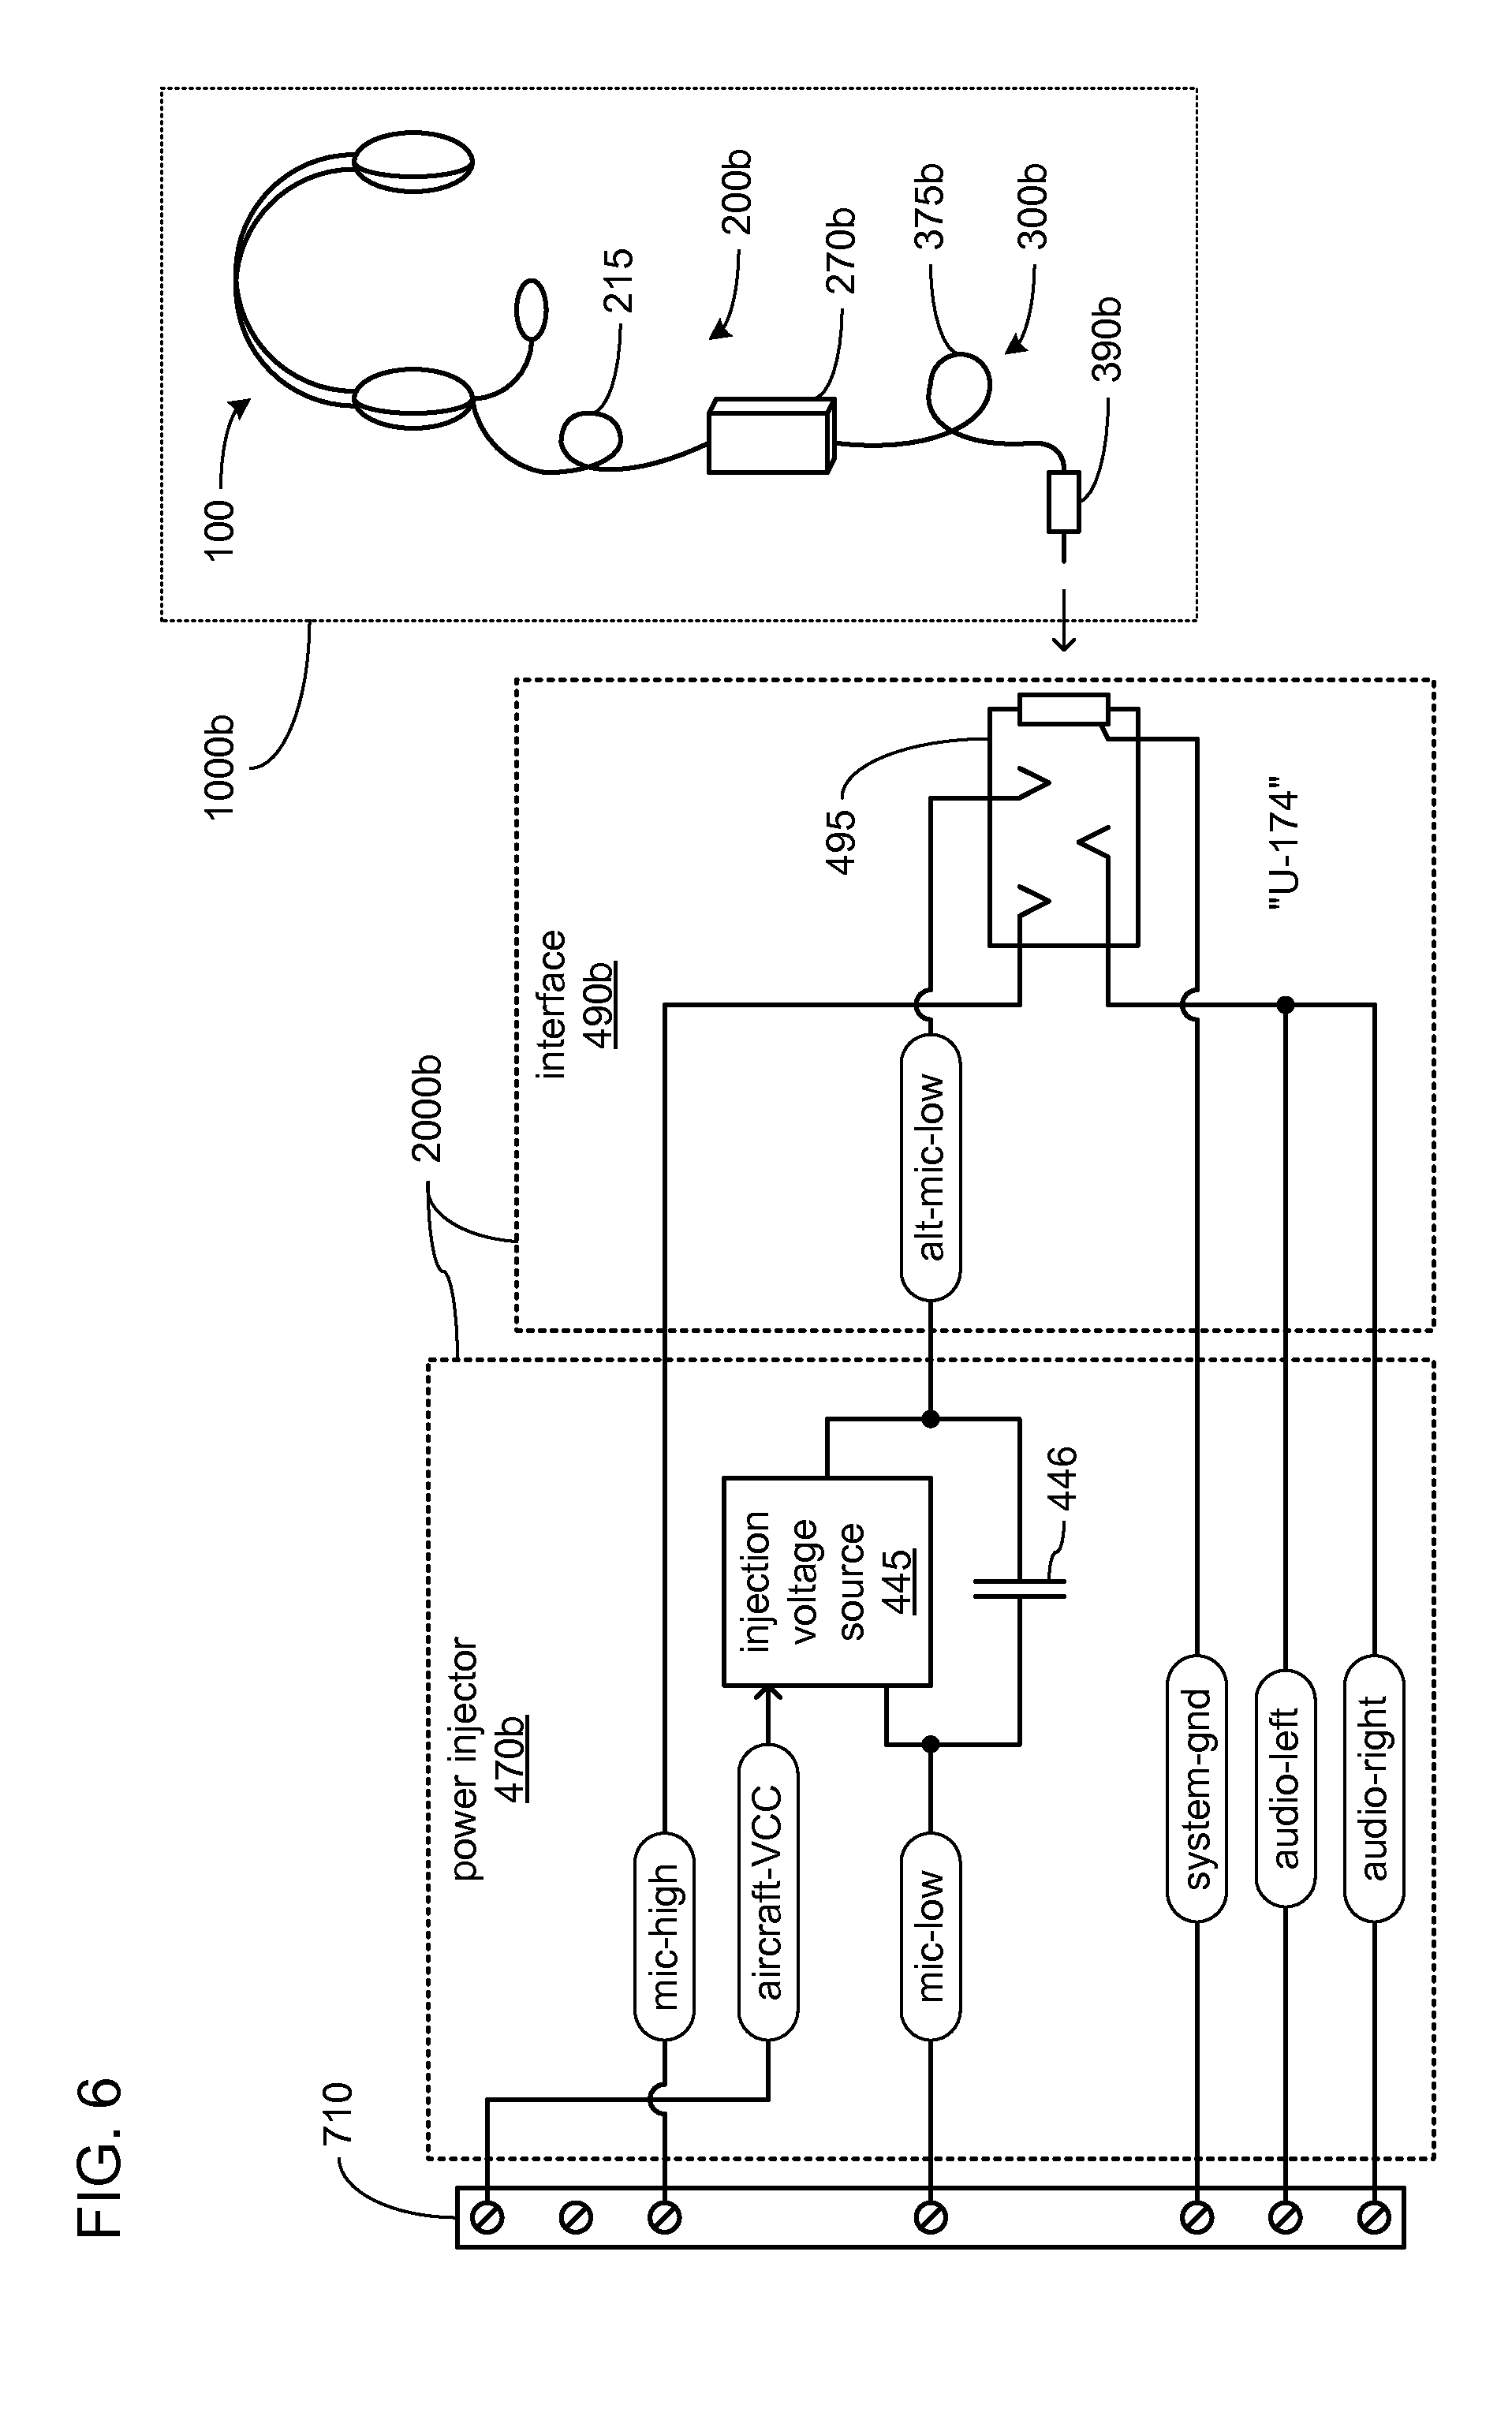 New Aircraft Headset Wiring Diagram Con Imagenes